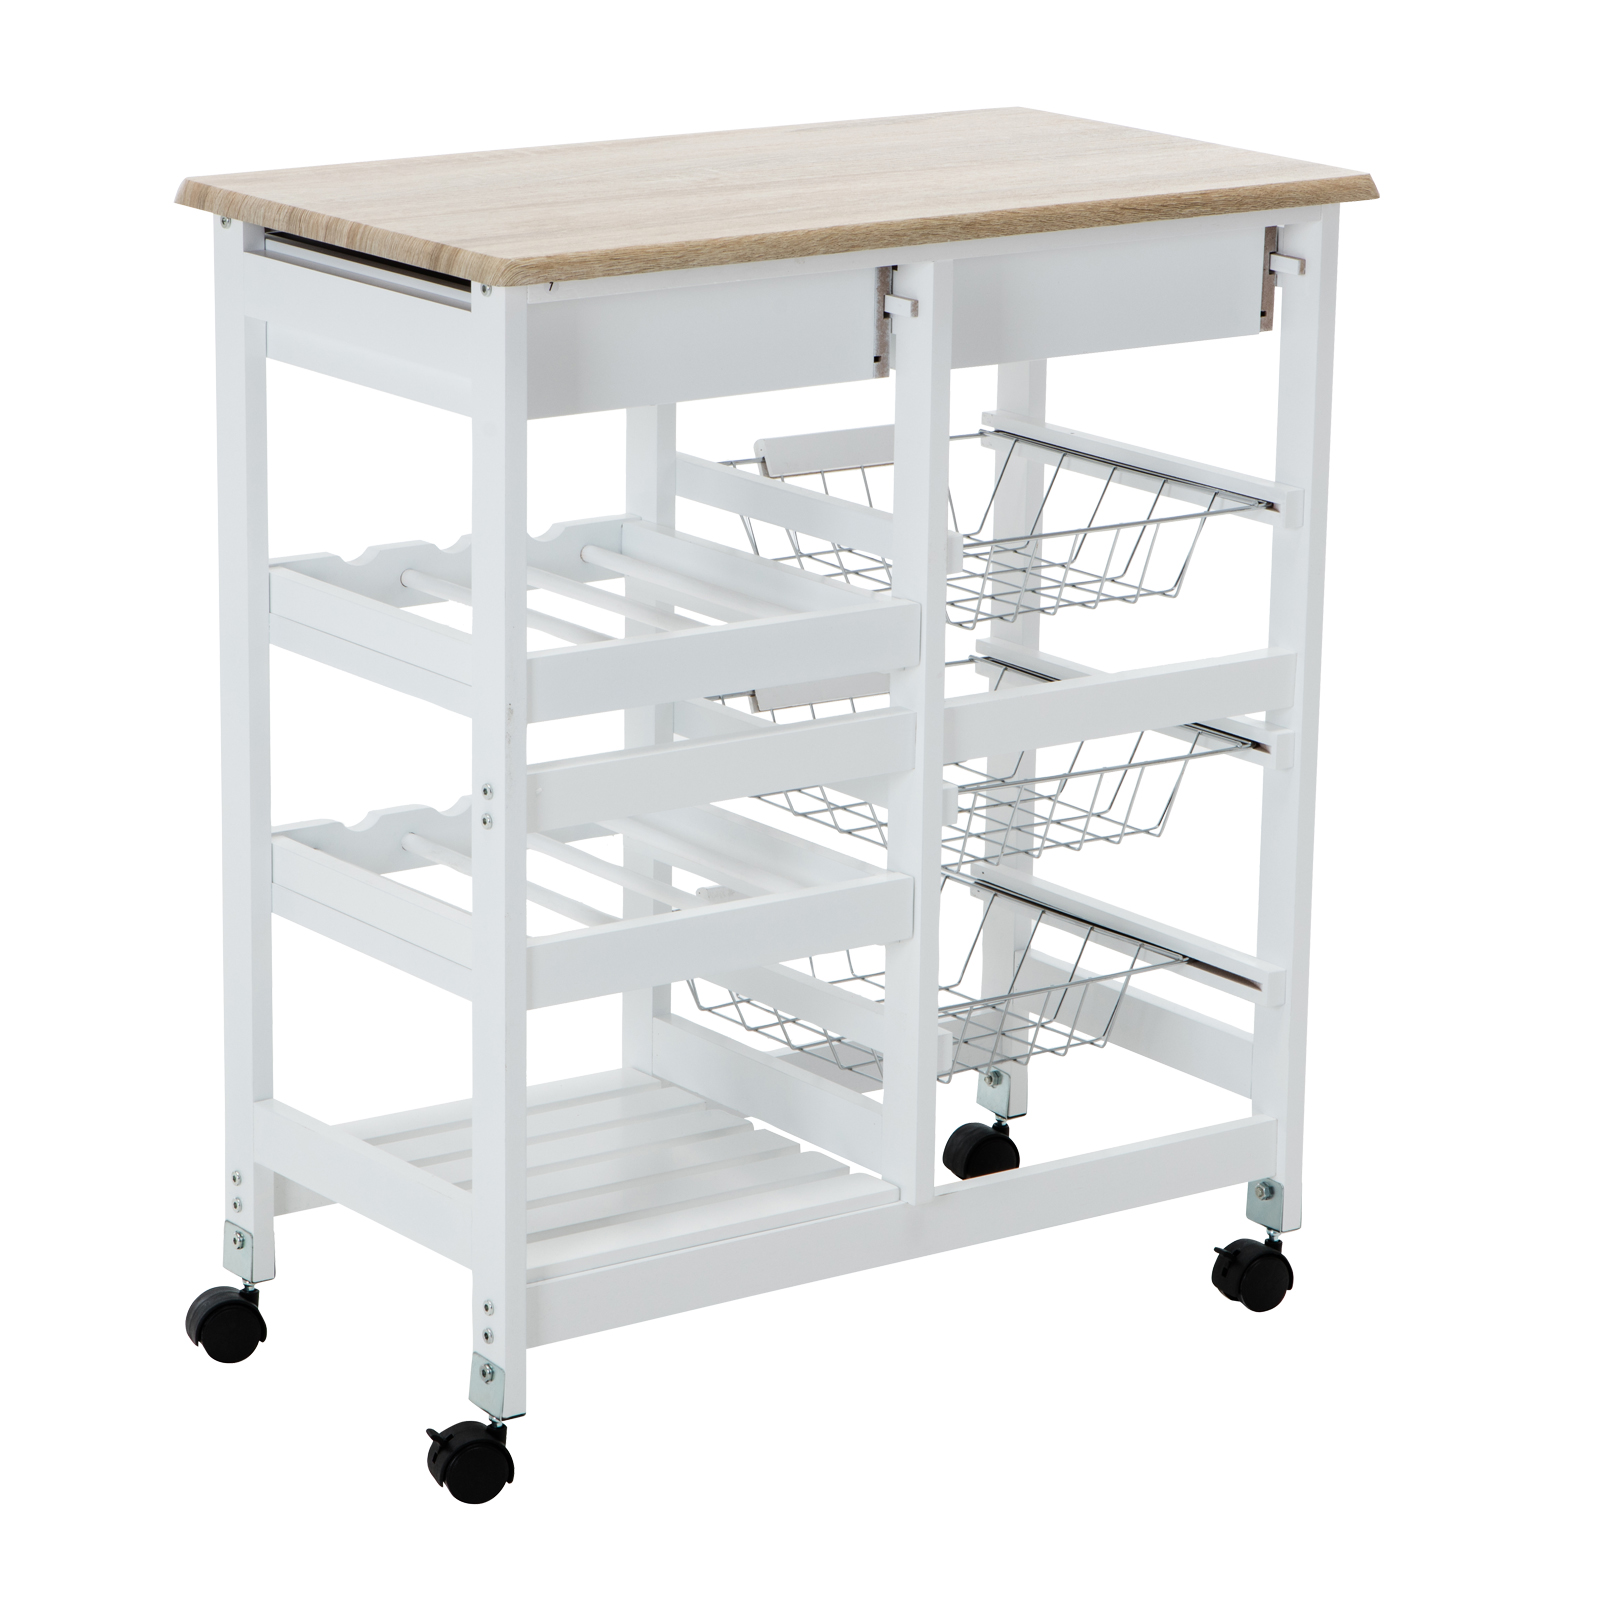 Portable Oak Kitchen Island Cart Trolley Rolling Storage Dining Table 2 Drawers Ebay